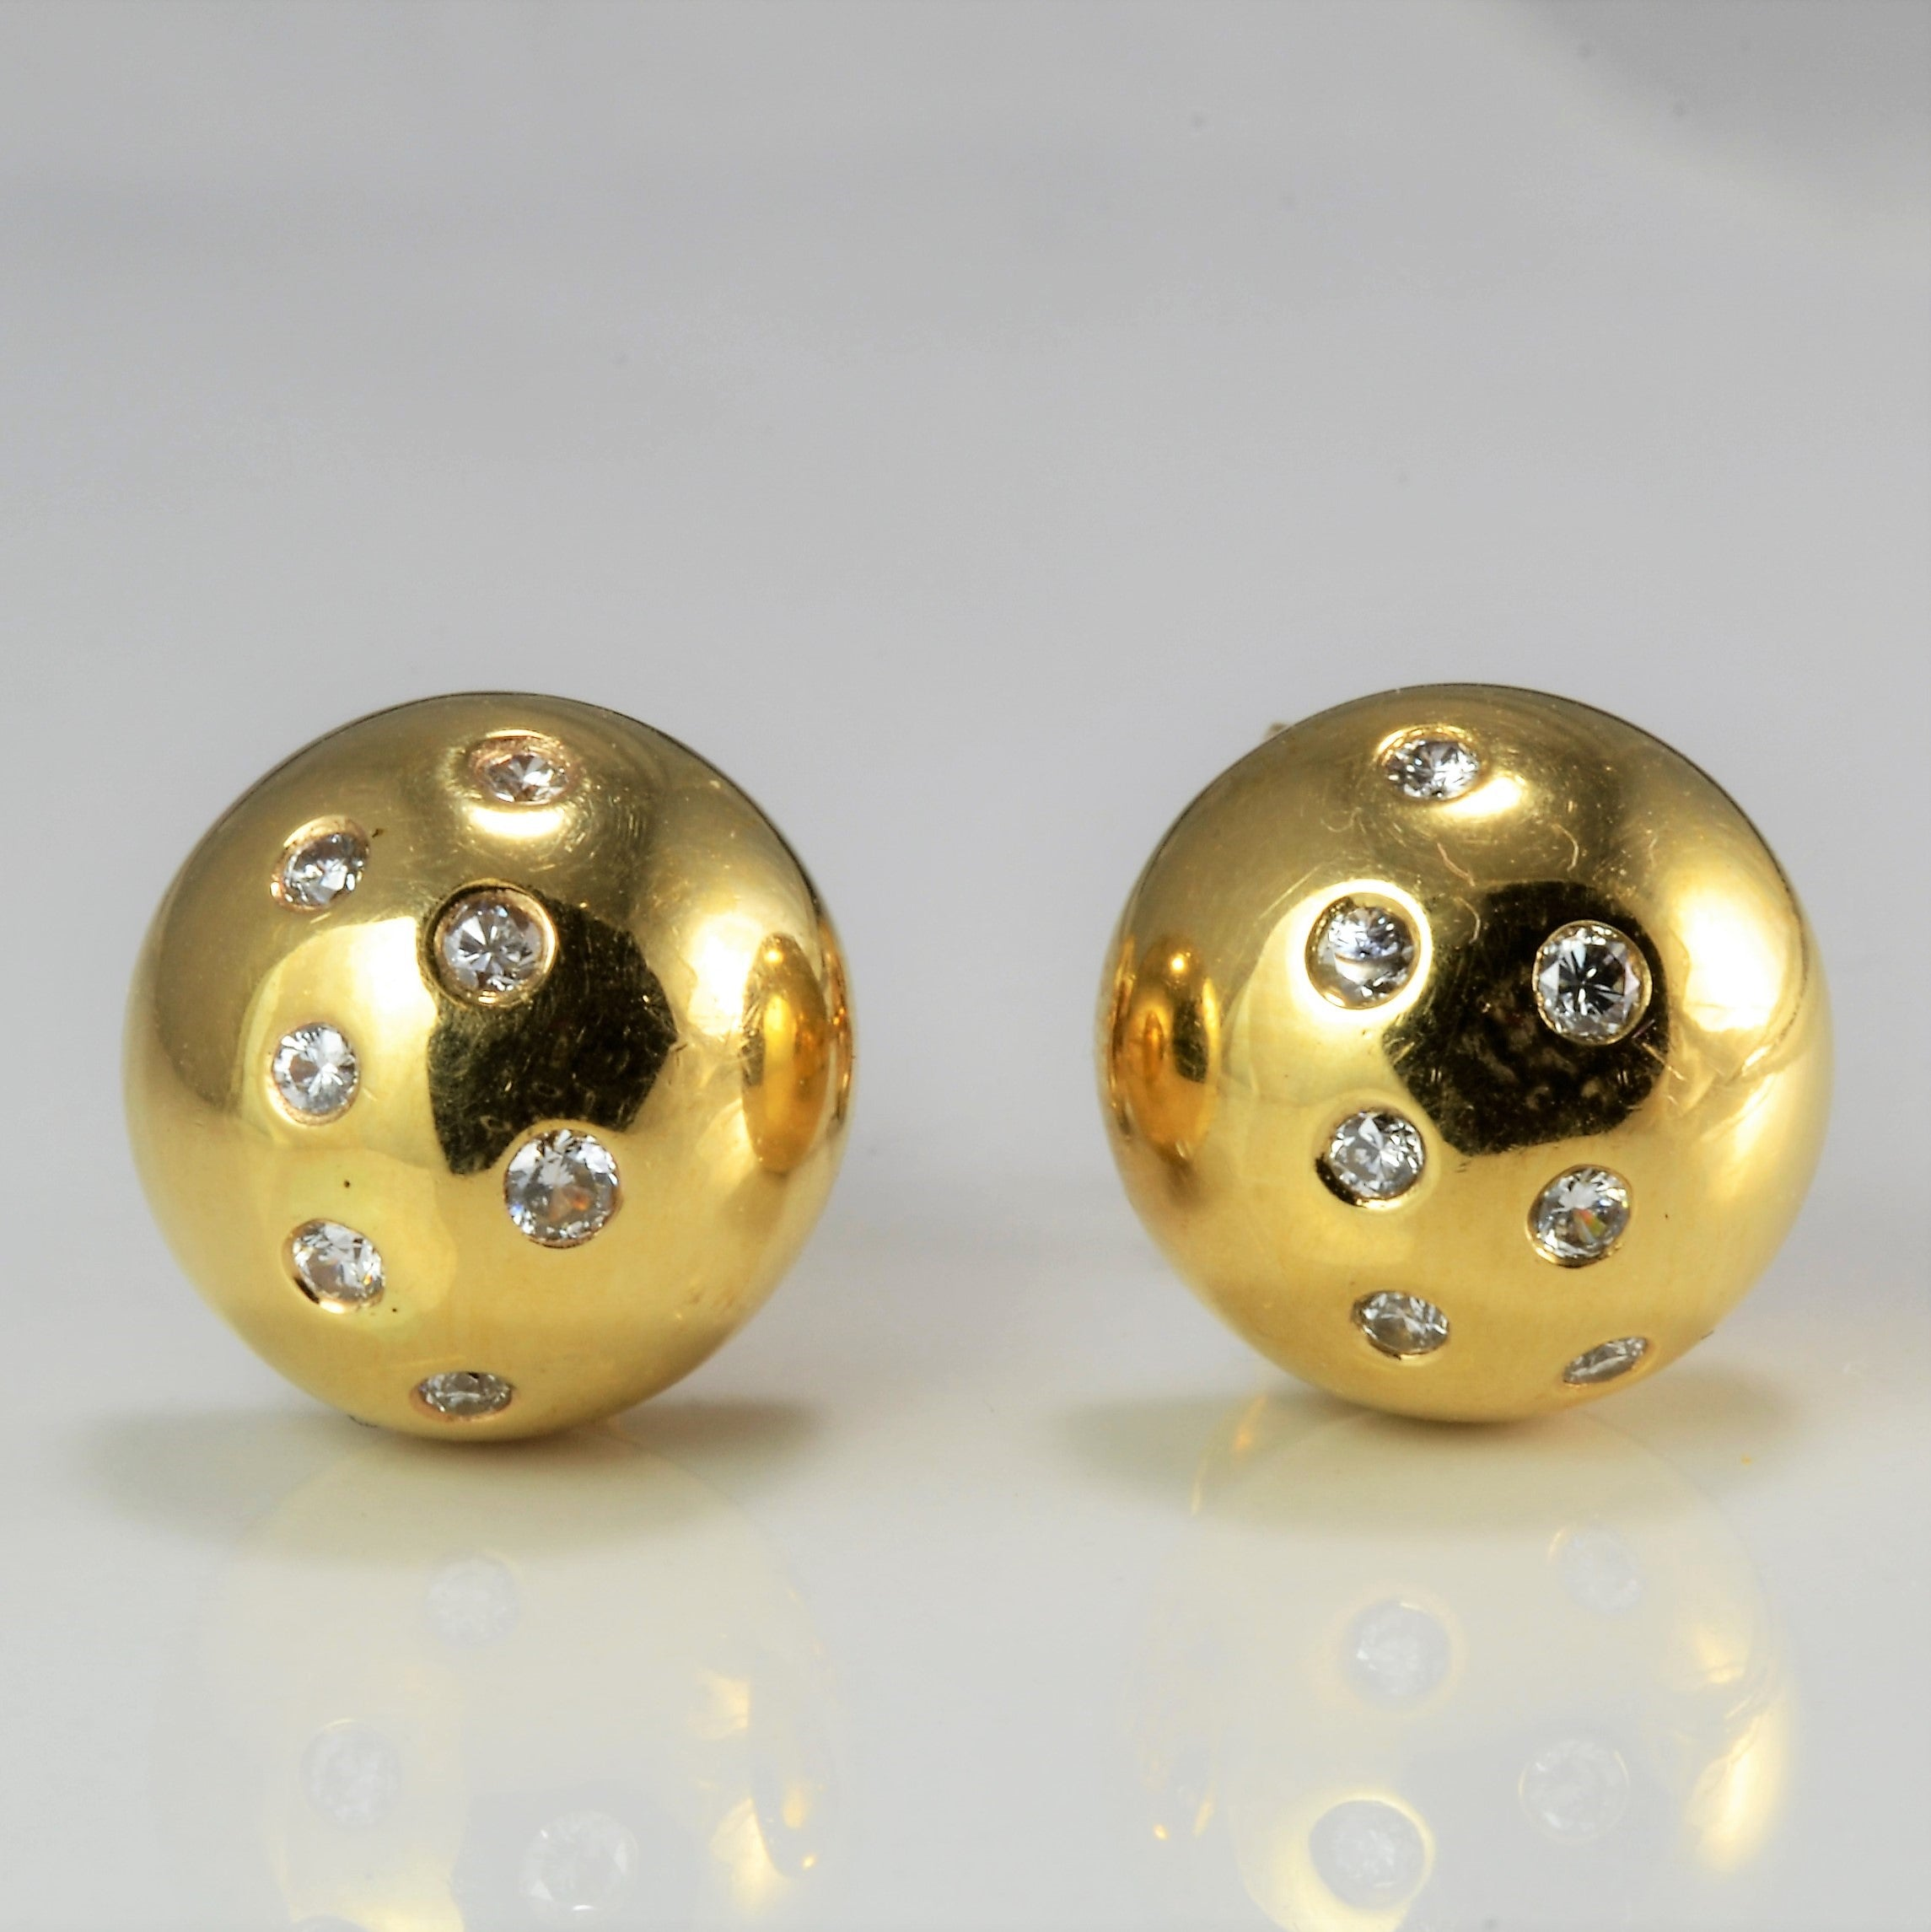 Gypsy Diamond Dome Stud Earrings | 0.28 ctw |